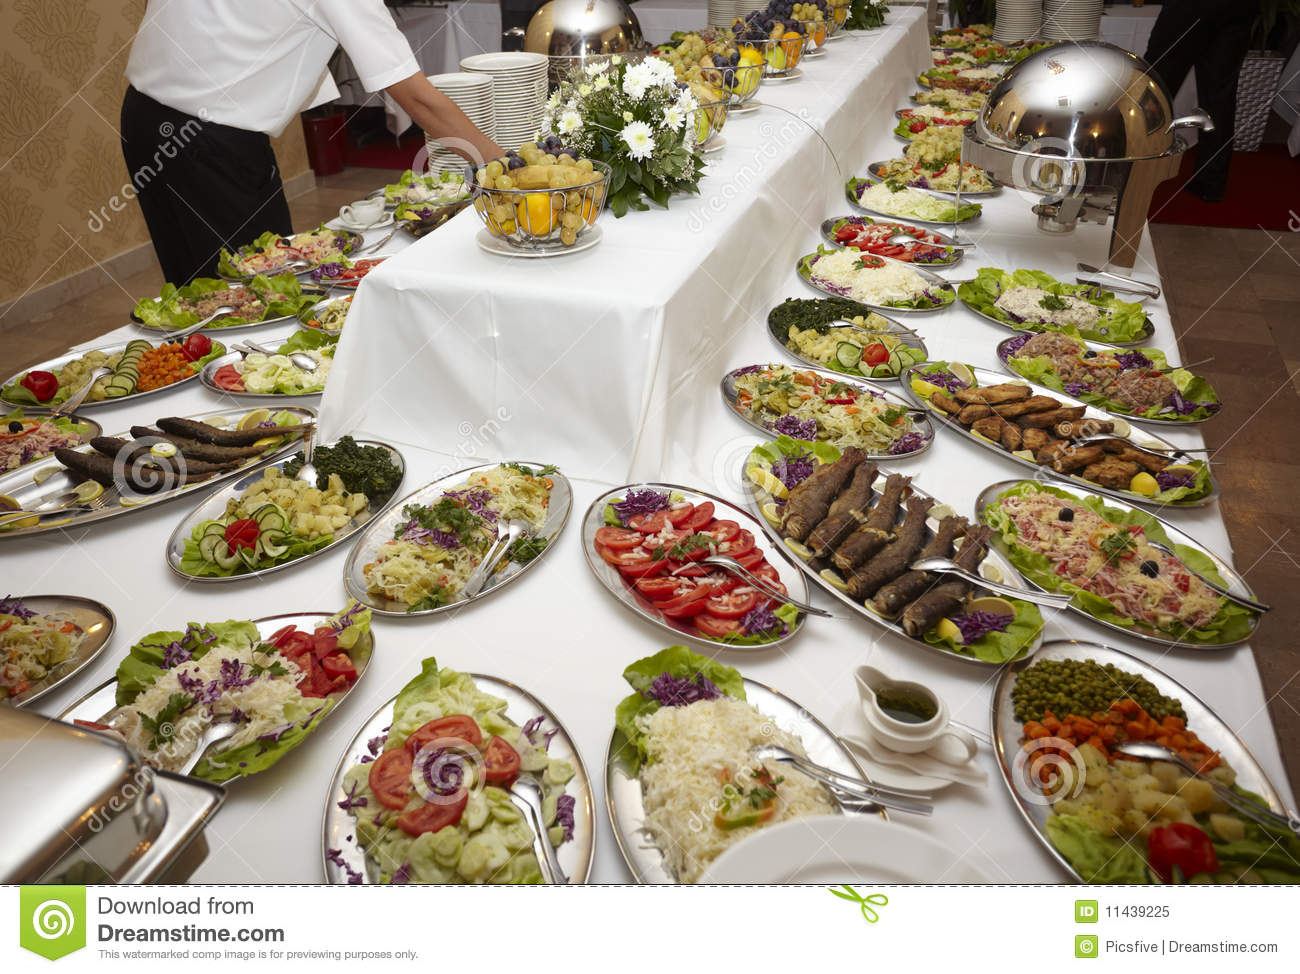 Catering food restaurant cuisine royalty free stock photo for Cuisine restaurant